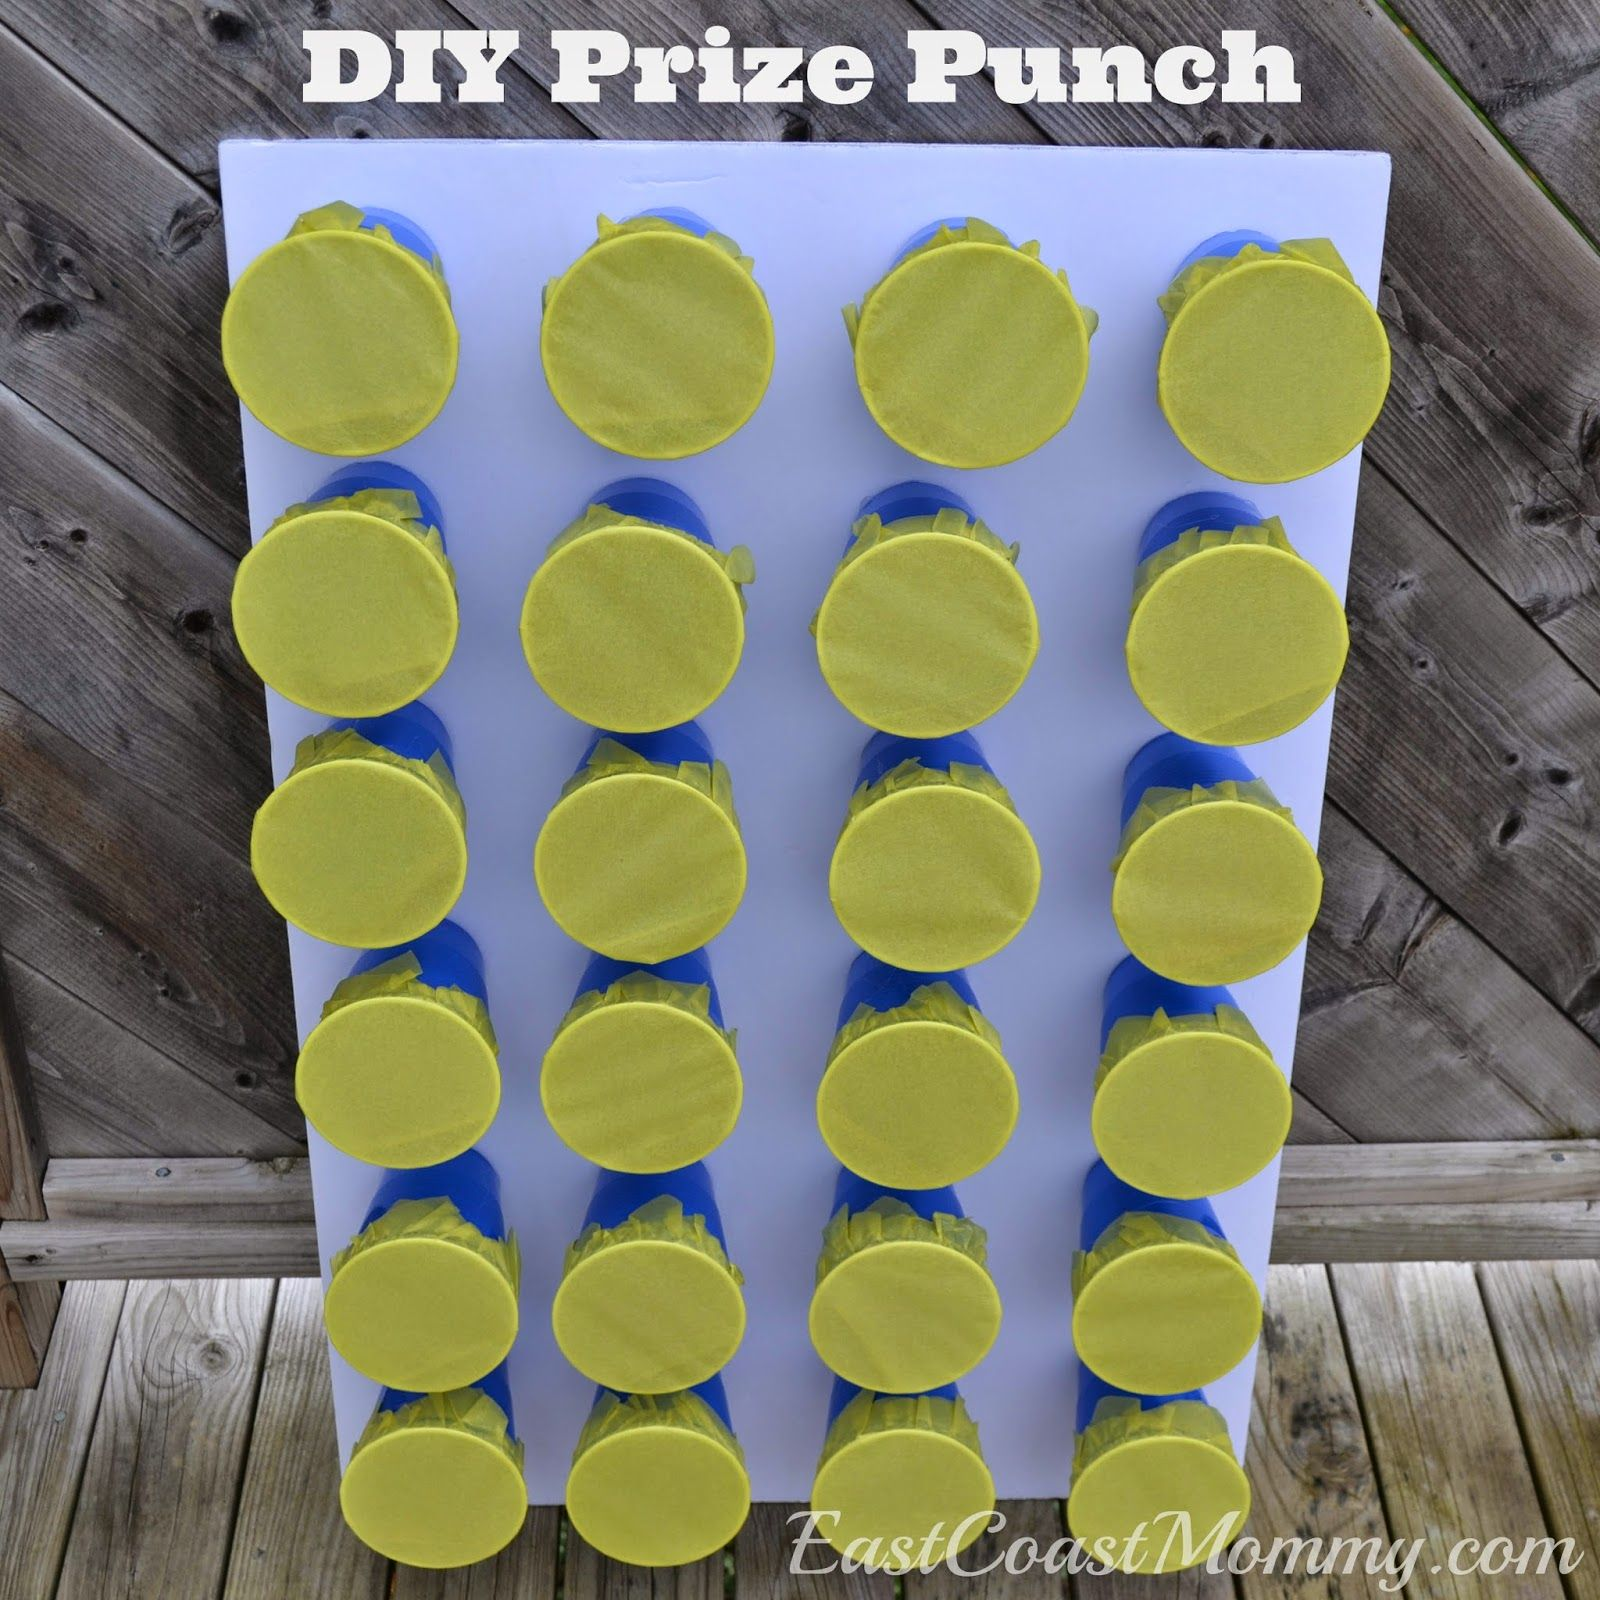 DIY Prize Punch Easy And Inexpensive Game For Childrens Parties Uses Dollar Store Supplies